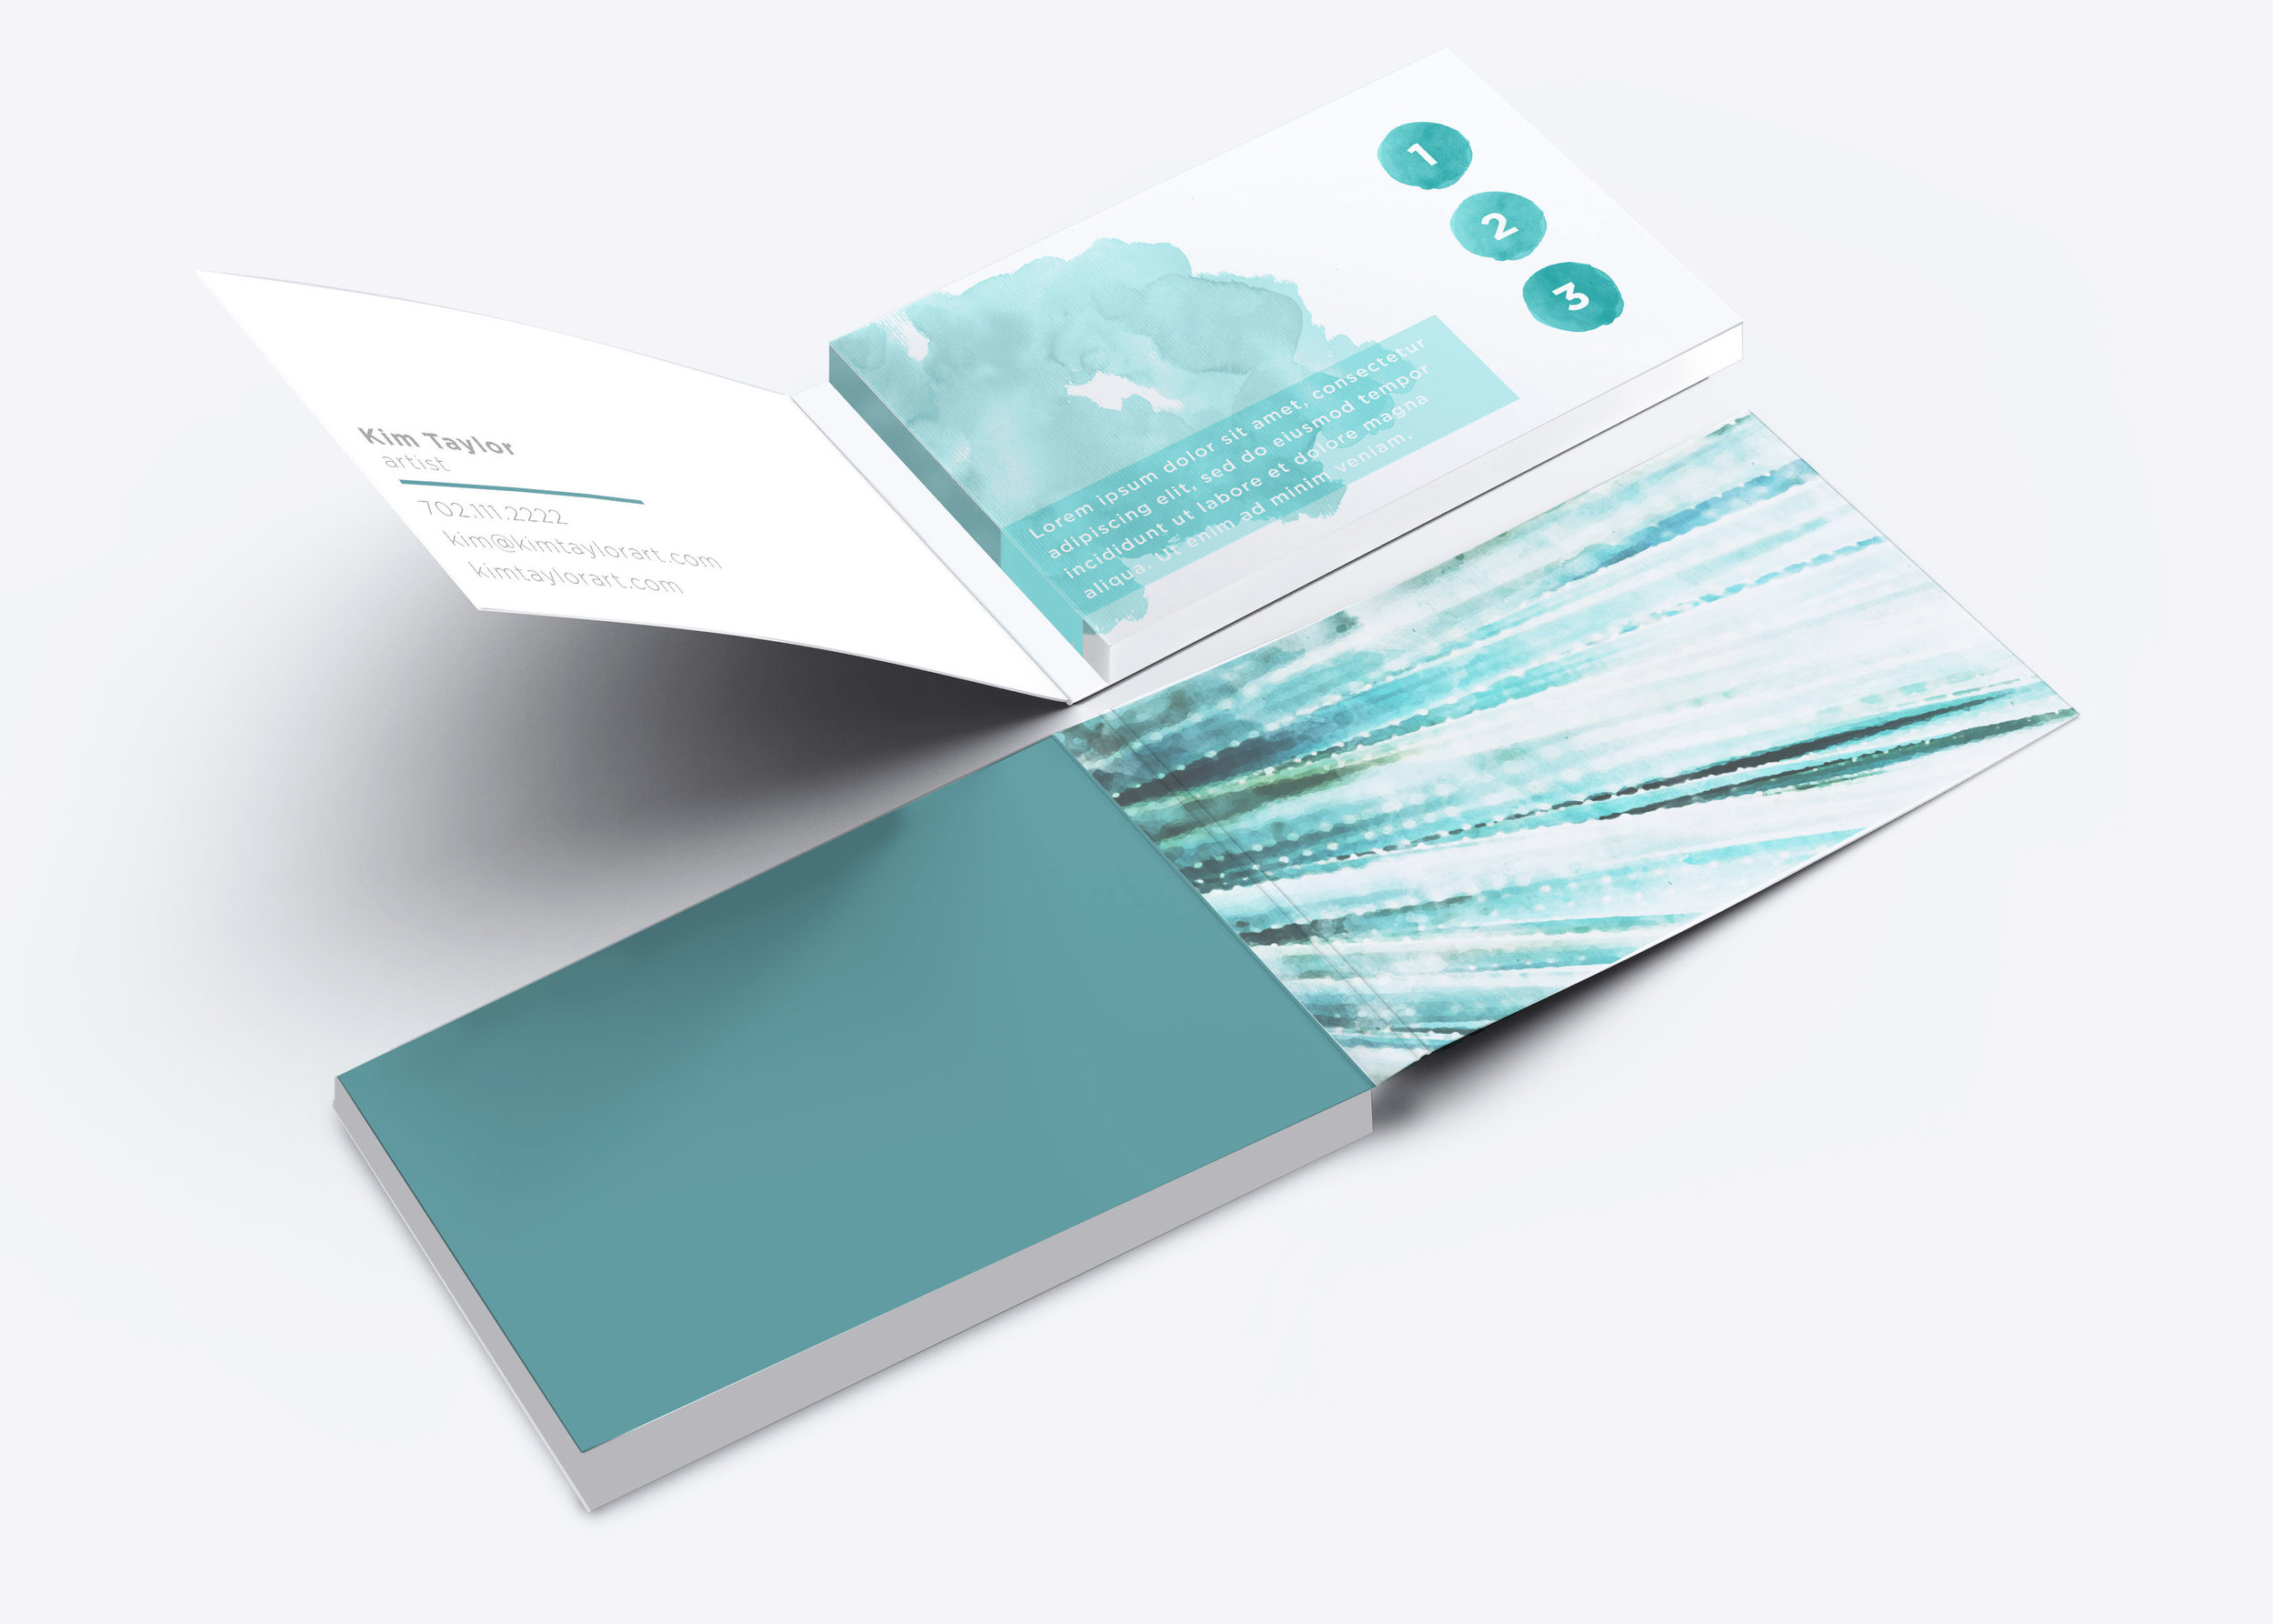 a-businesscard2.jpg